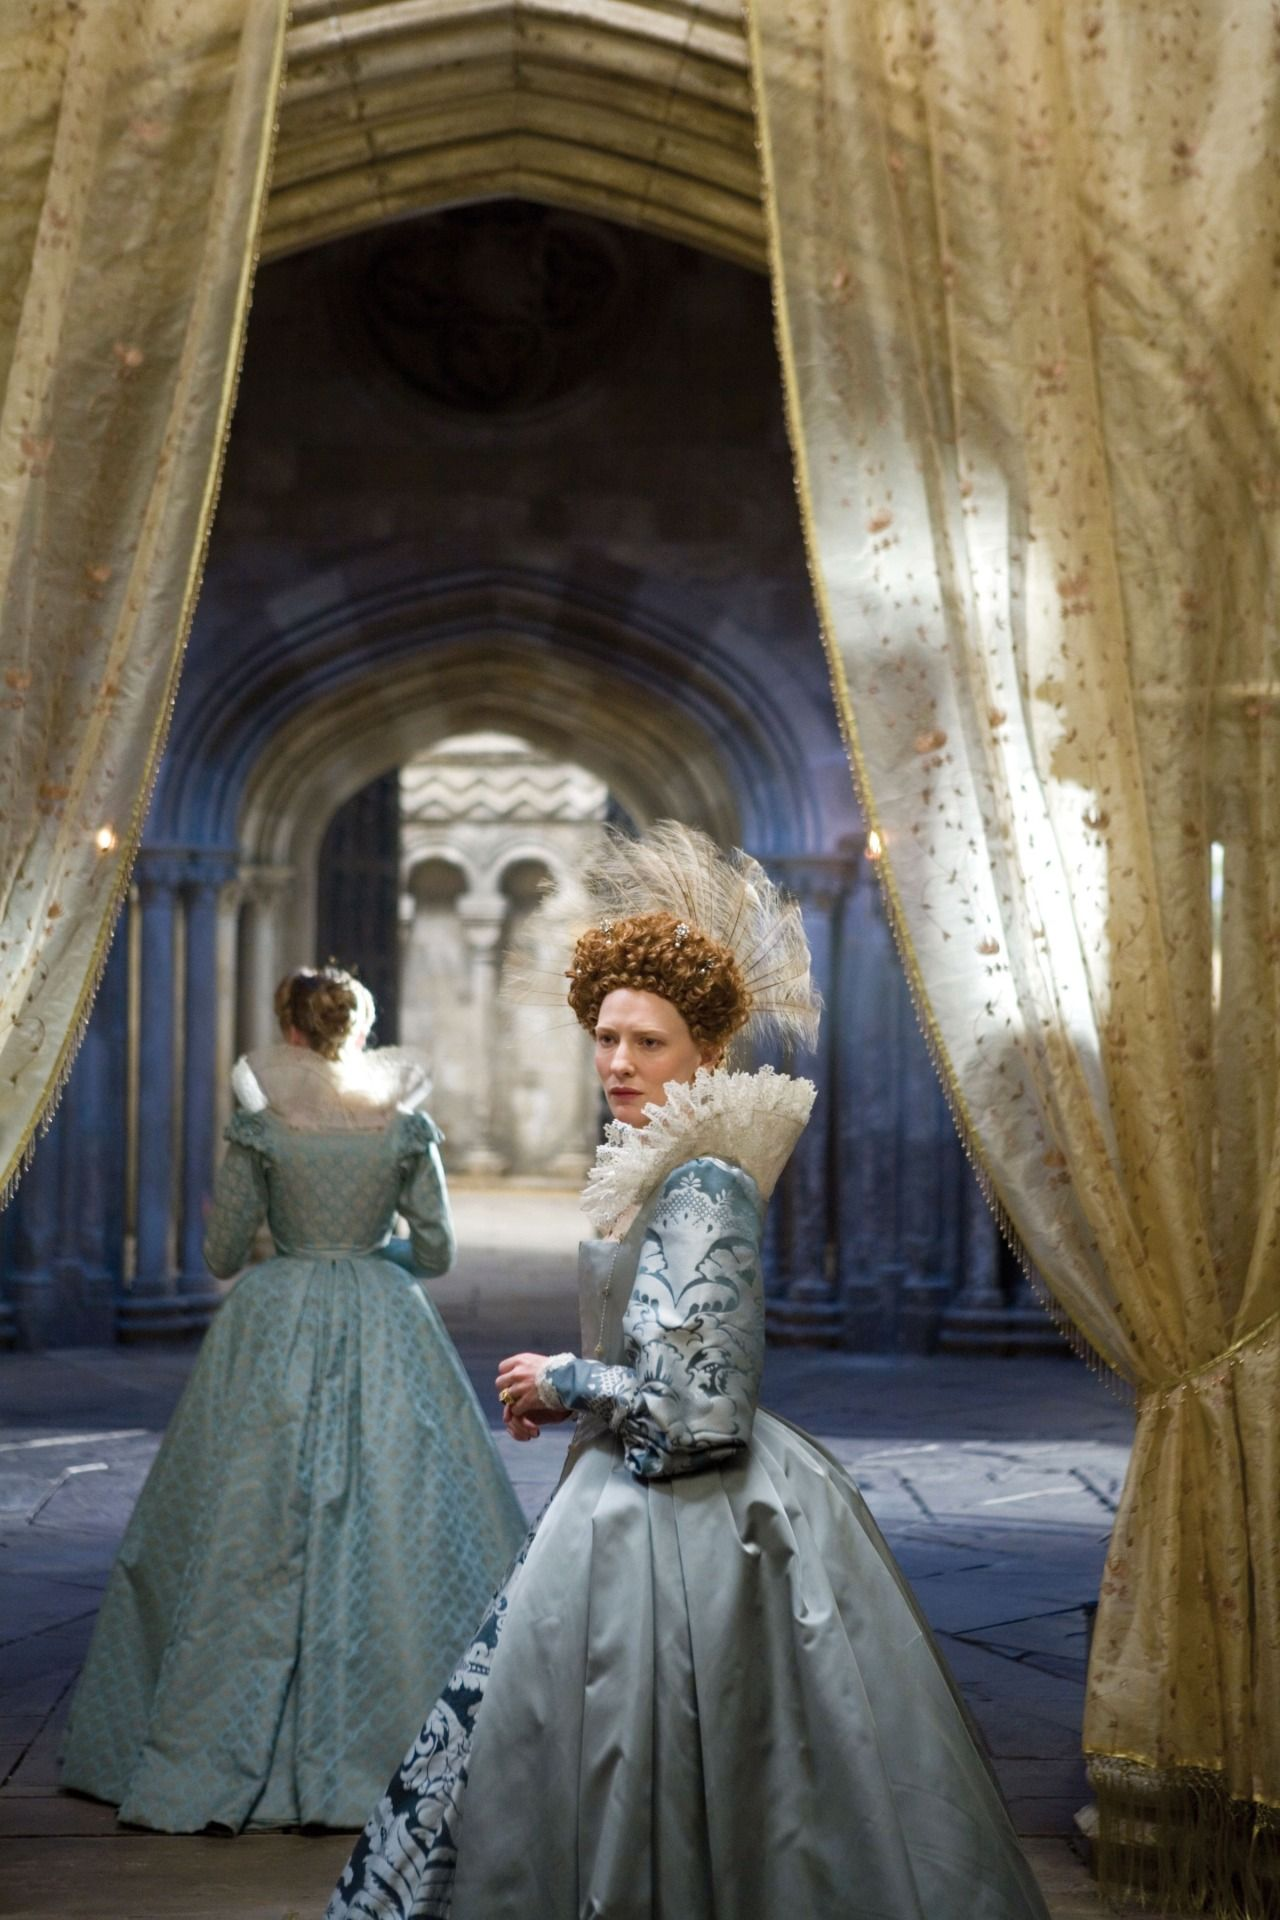 Cate Blanchett as Queen Elizabeth I in 'Elizabeth The